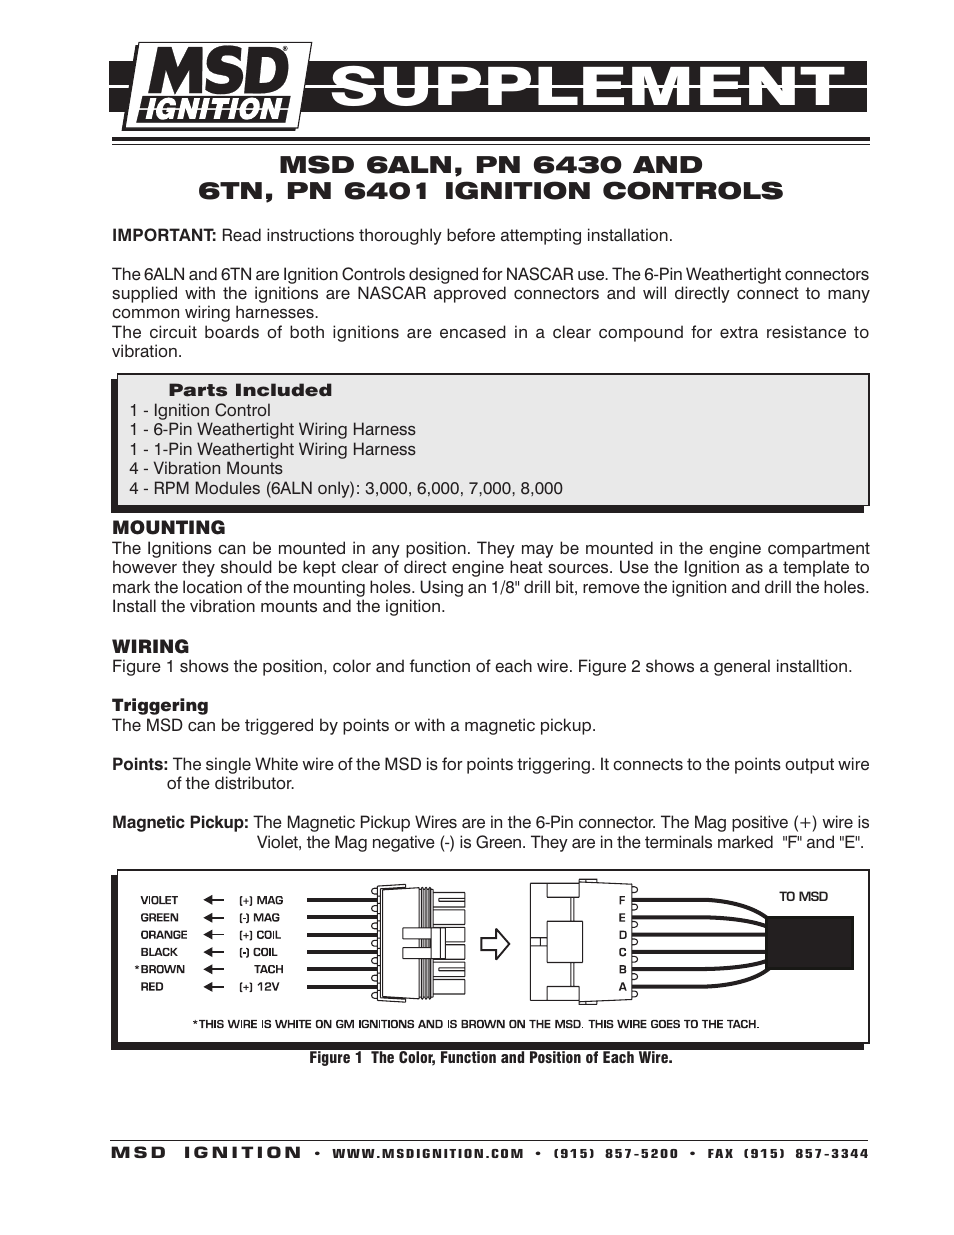 msd 6430 6aln ignition control supplement page1 tg66m3170c00 wiring diagram,m \u2022 indy500 co  at edmiracle.co